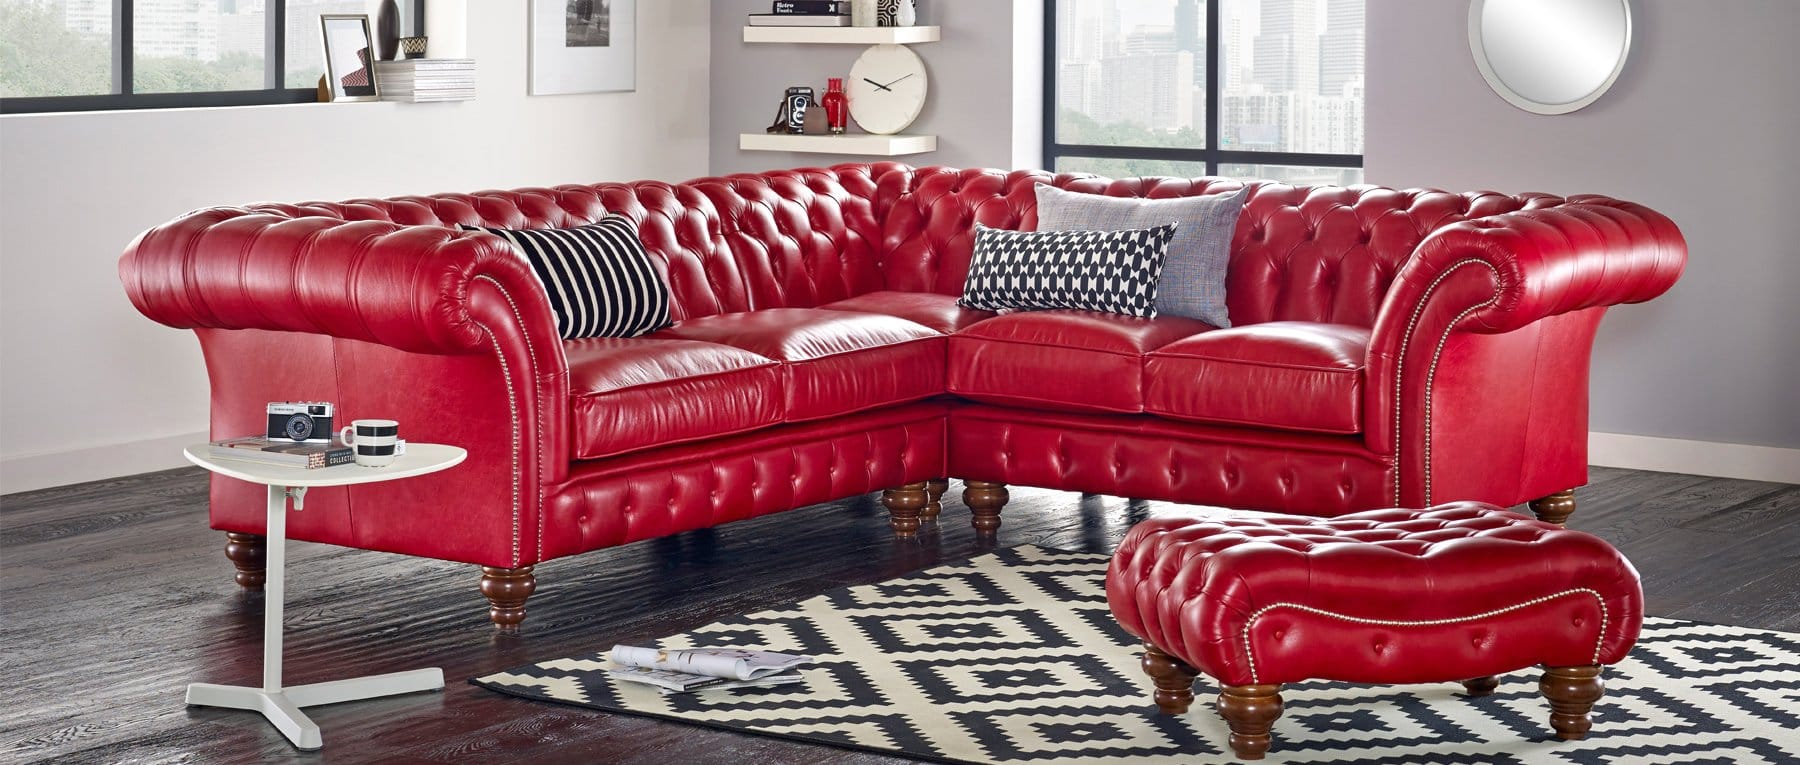 Bespoke Chesterfield Furniture Handmade In Britain Sofas By Saxon